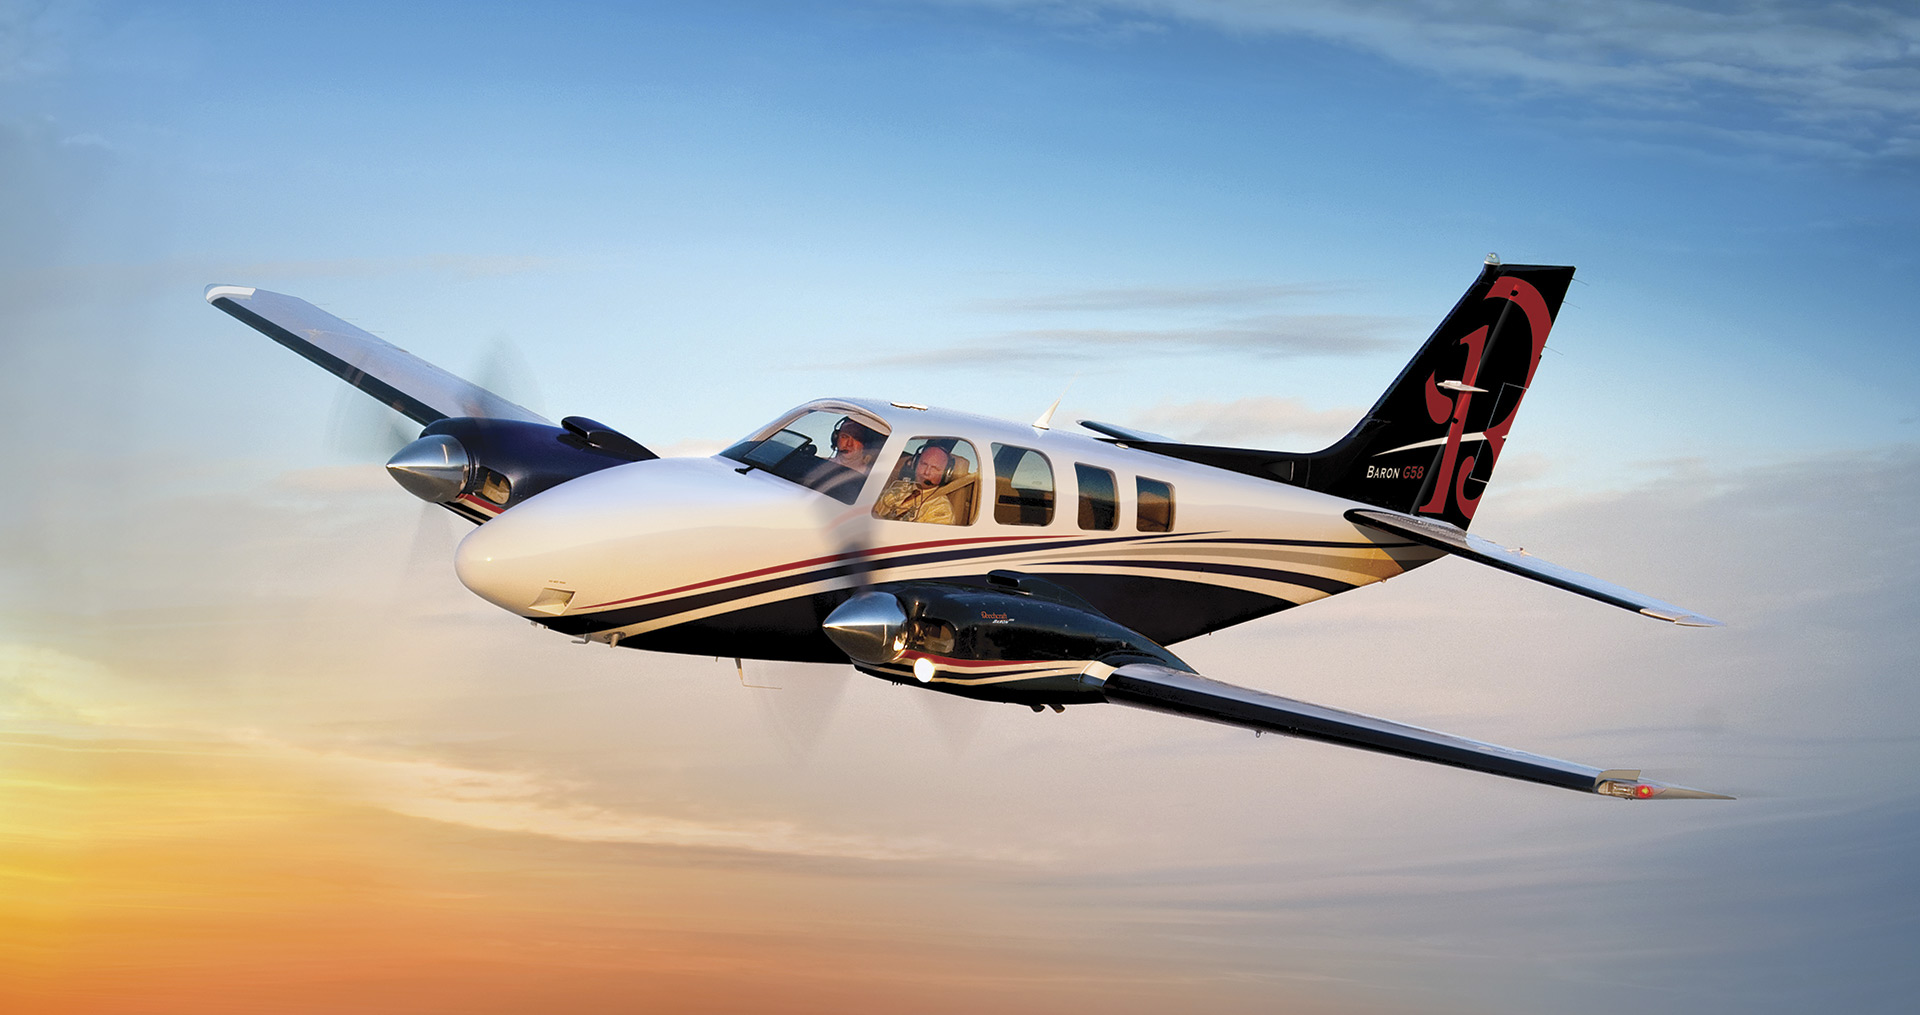 Beechcraft Baron G58 in flight